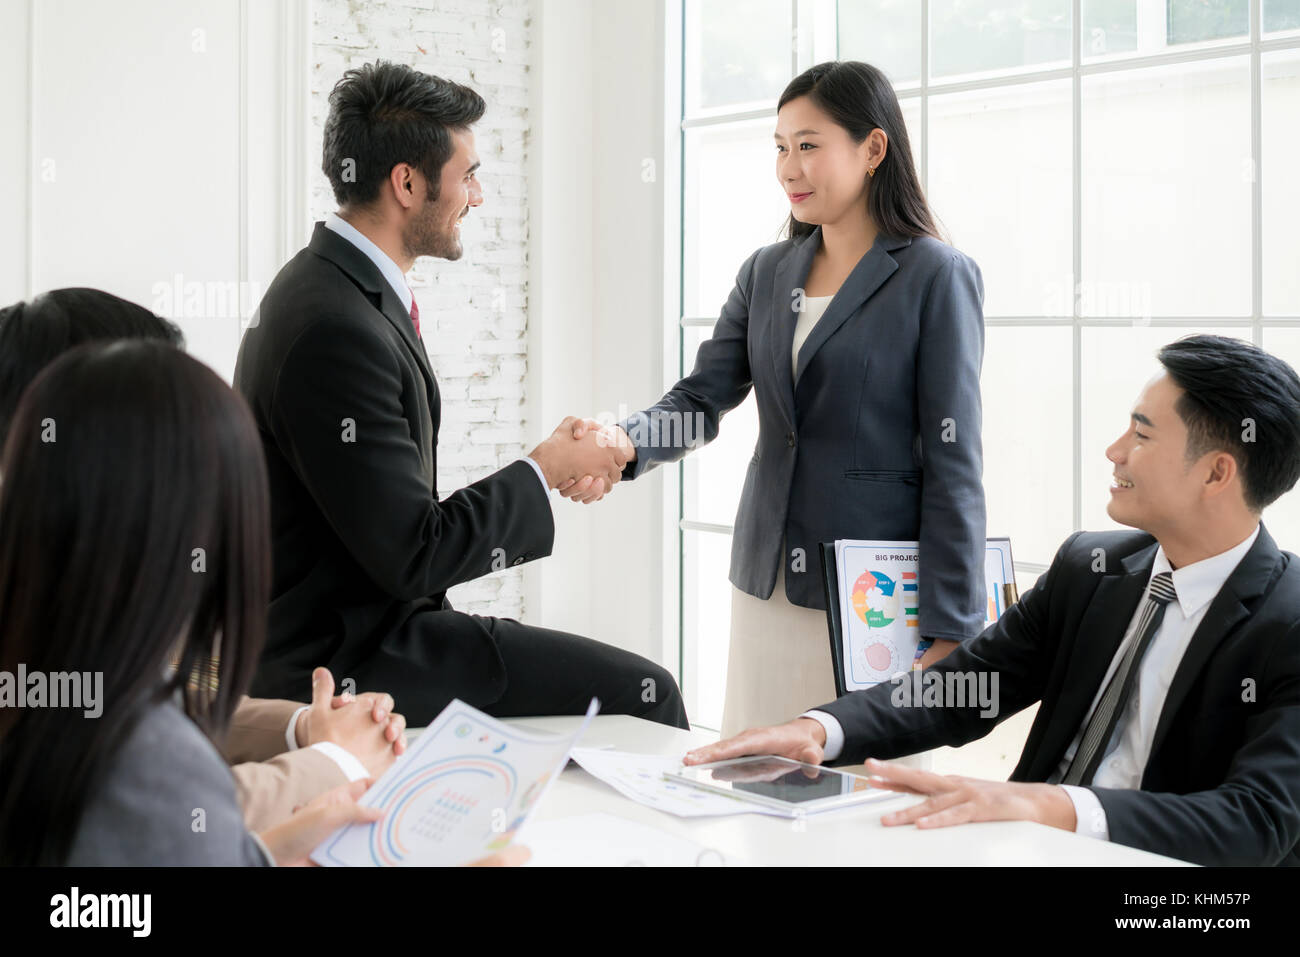 Successful job Asian businessman and businesswoman shaking hands in board room when finishing up a meeting. - Stock Image